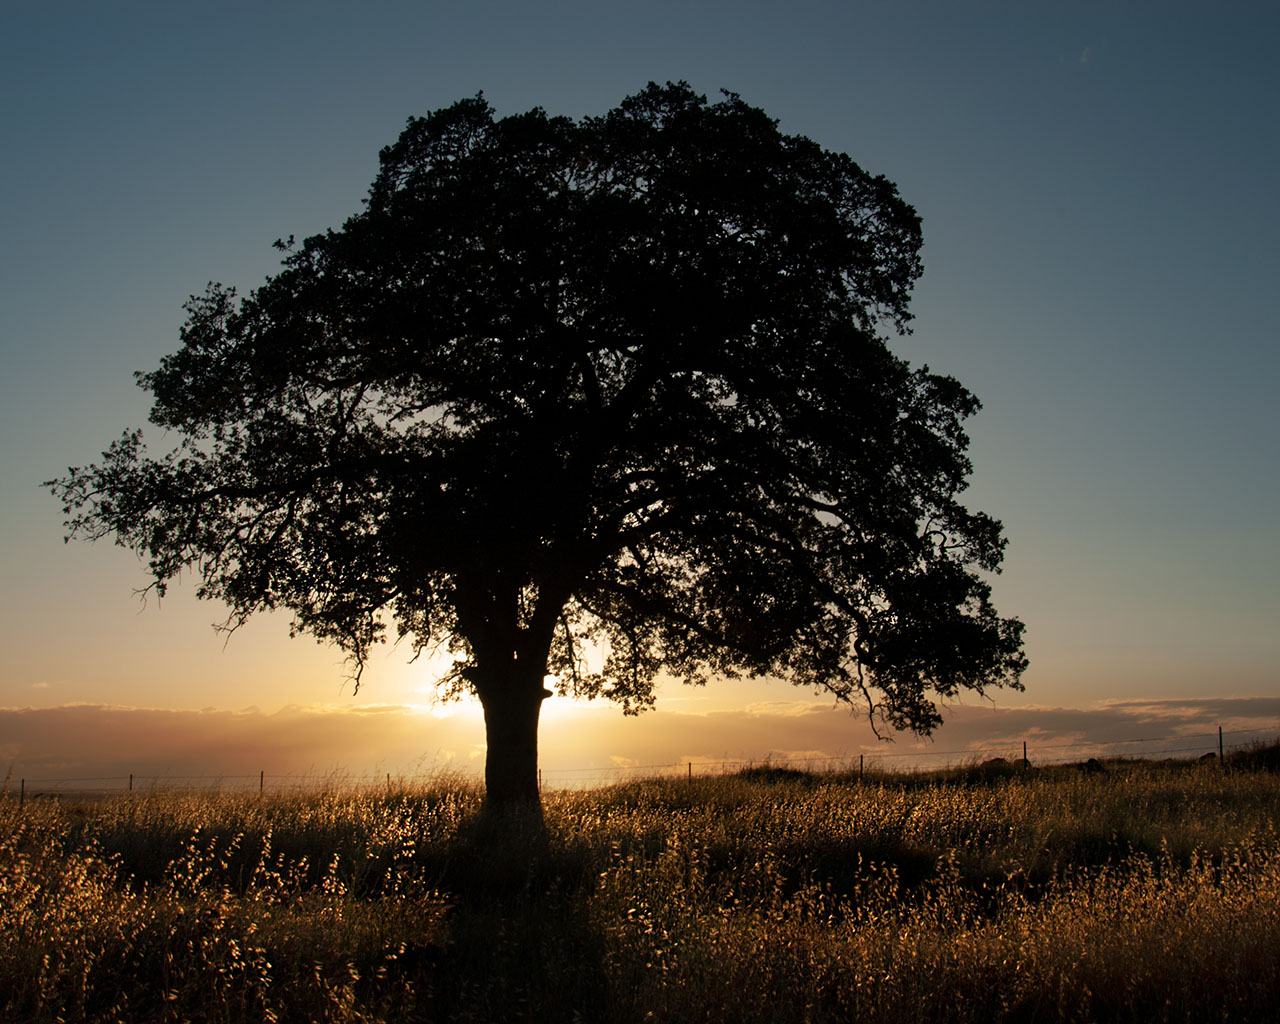 An oak tree in front of a sunset